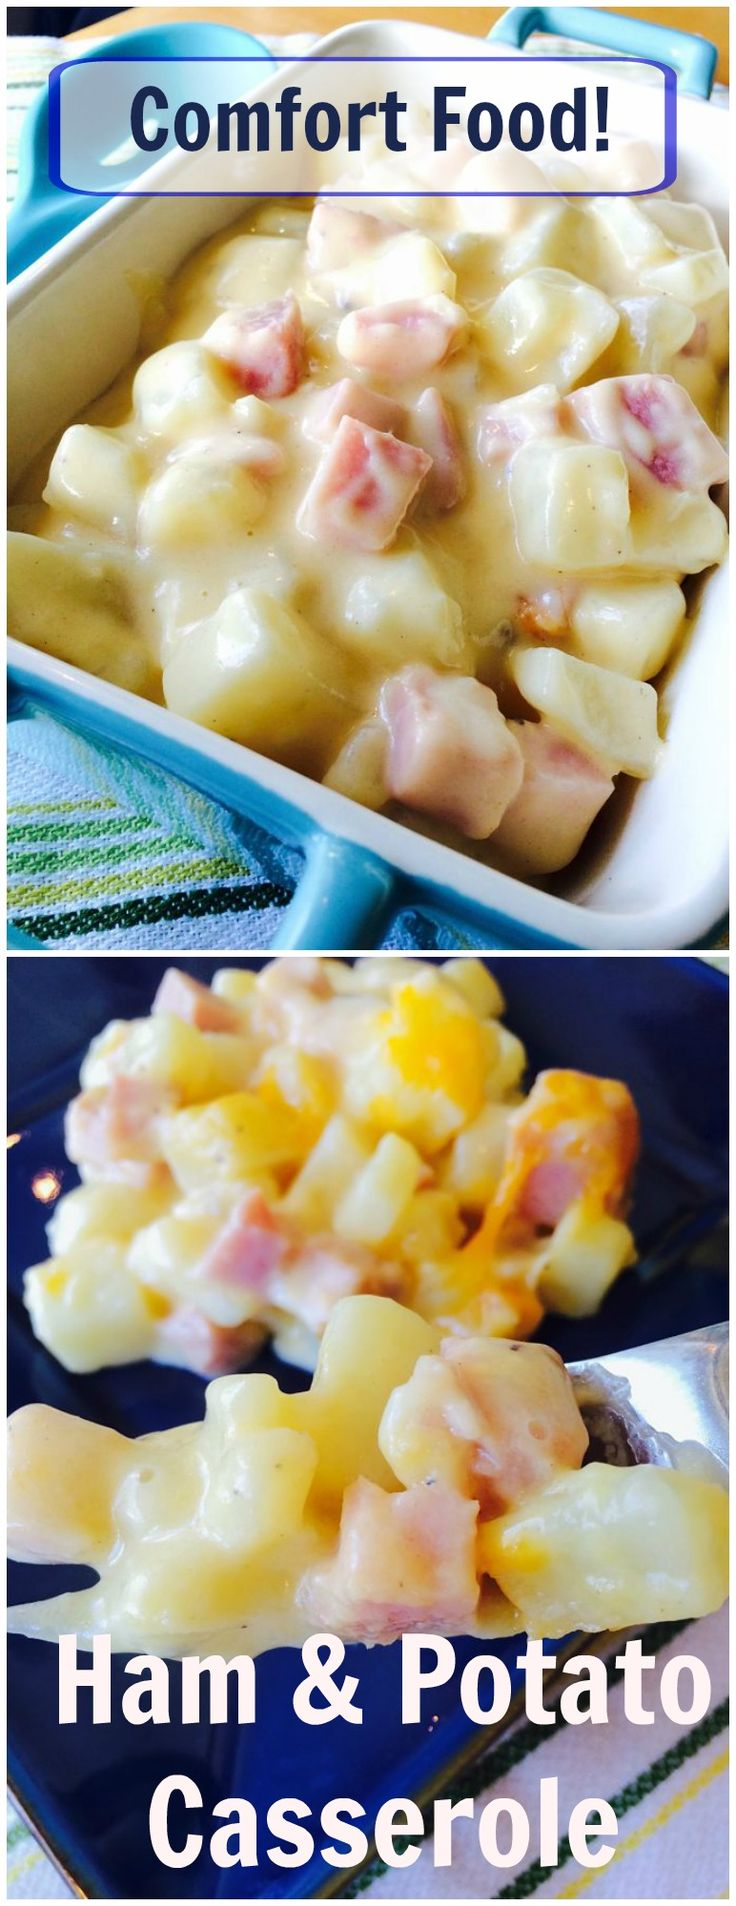 When you want something warm and comforting this Ham and Potato Supreme is just the answer. The velvety cheese sauce blankets the ham and potatoes making it the perfect cool weather comfort food!